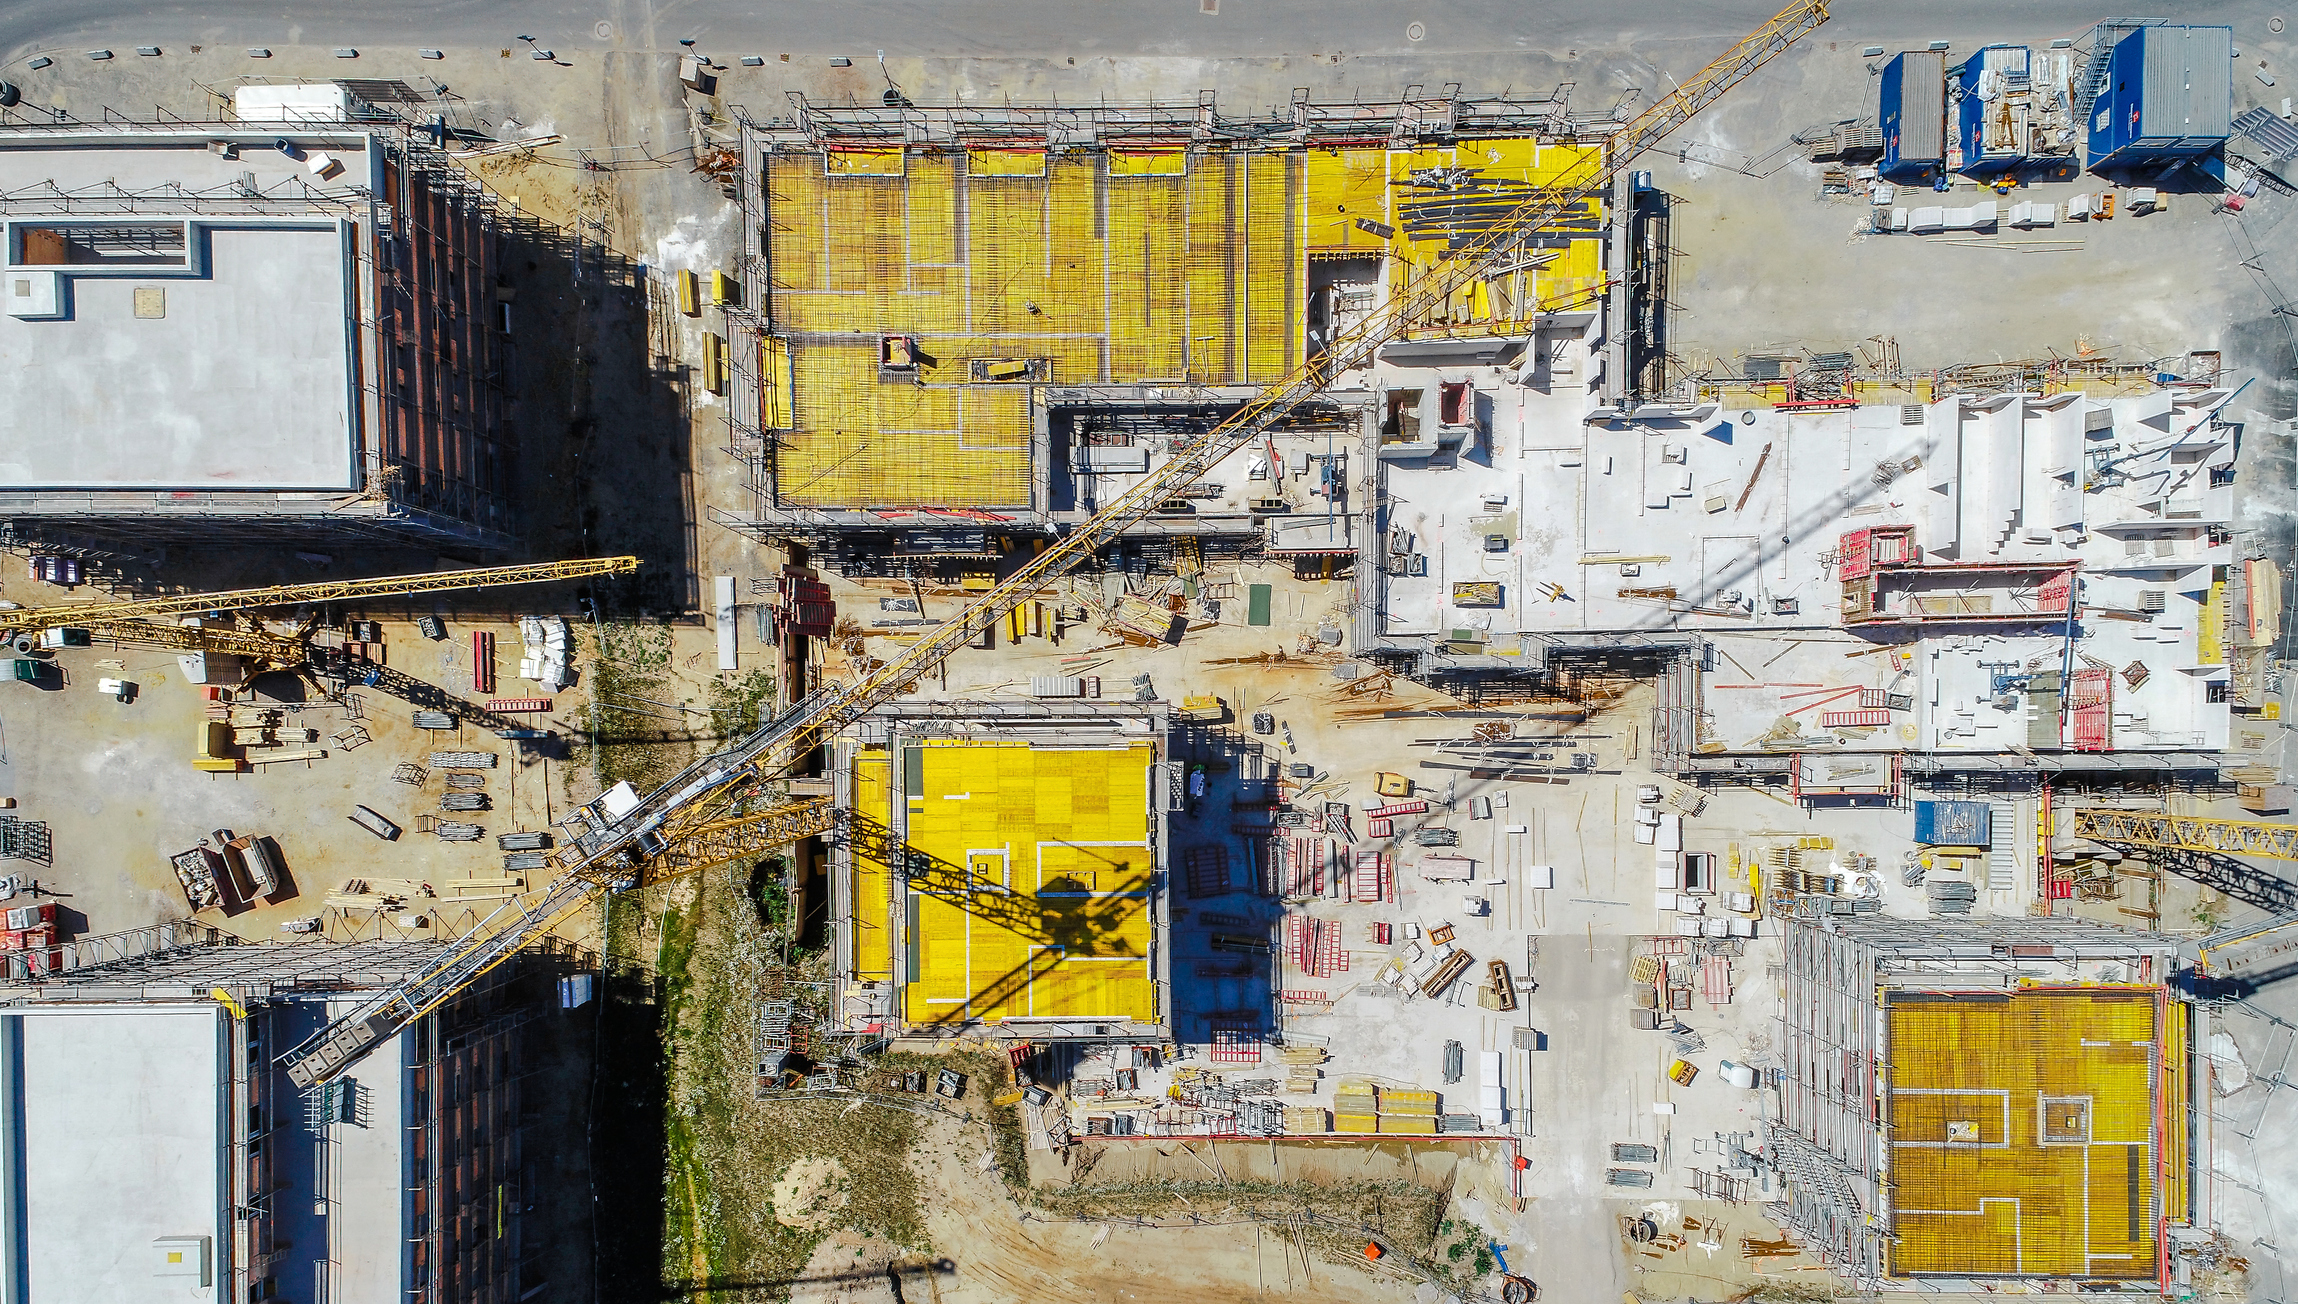 An arial shot of a construction site taken from a drone from overhead